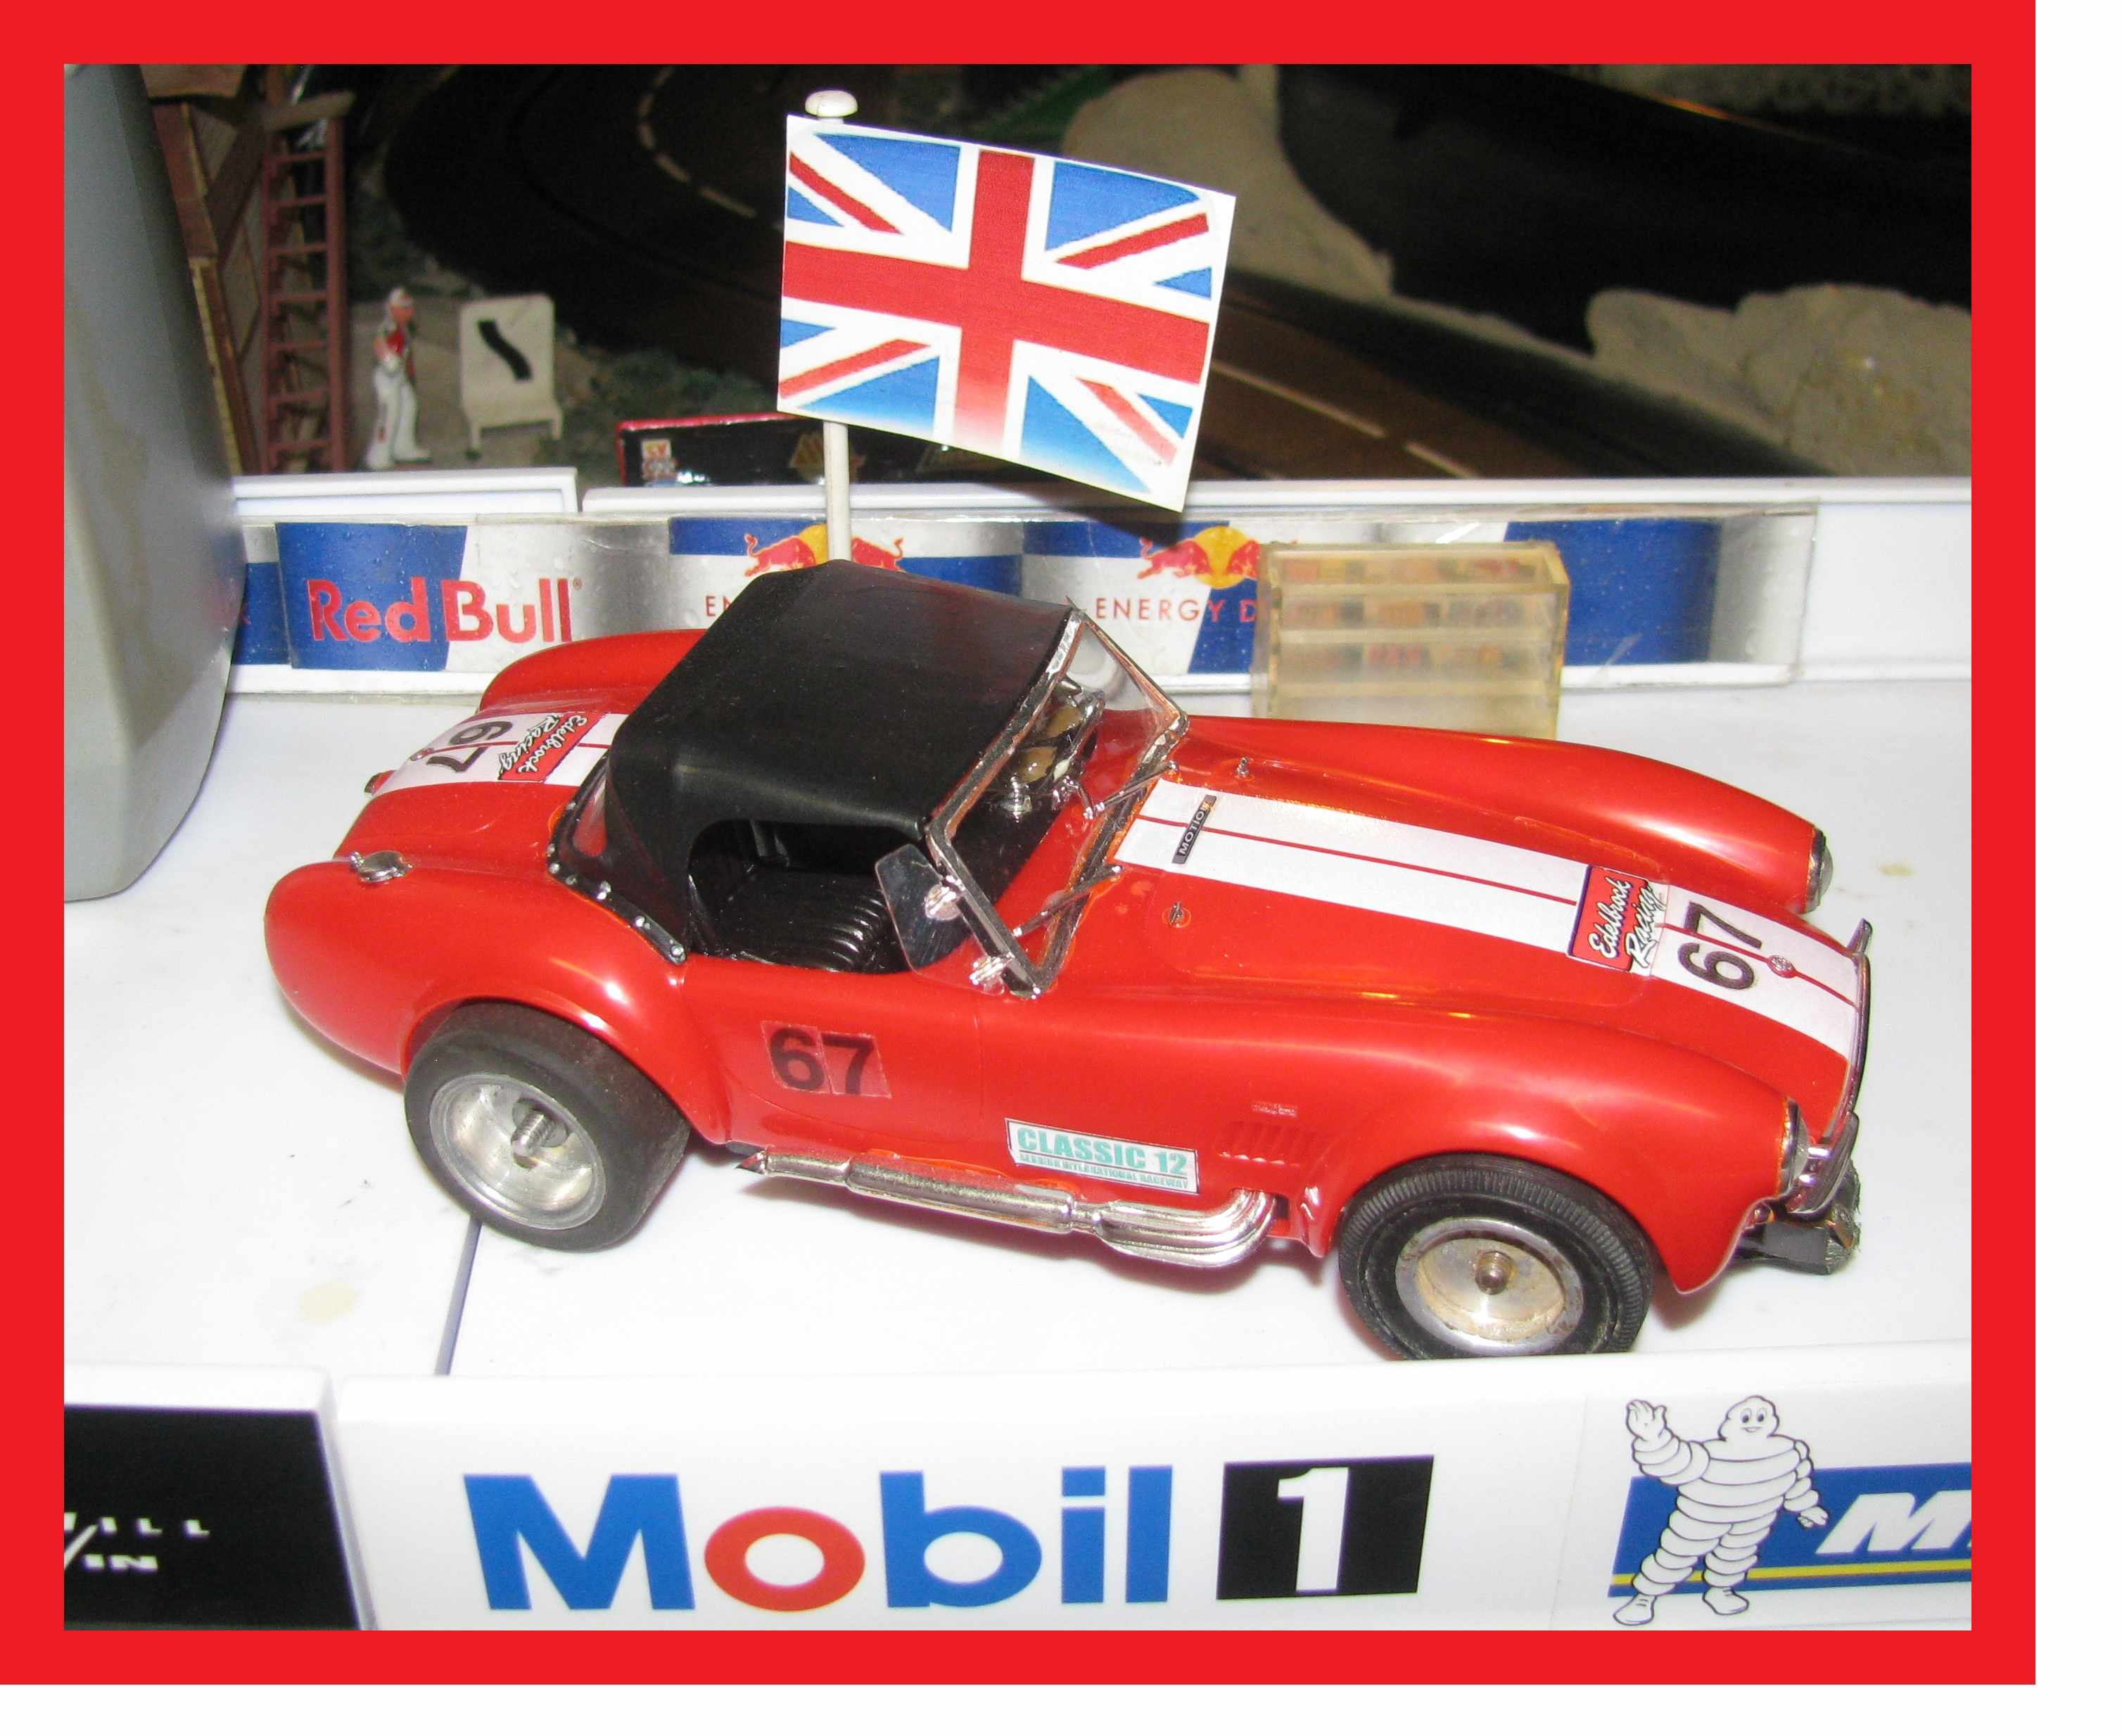 *SOLD* * Sale * 1965 Shelby Cobra Racer 1:24 Scale Slot Car #67 in original Red